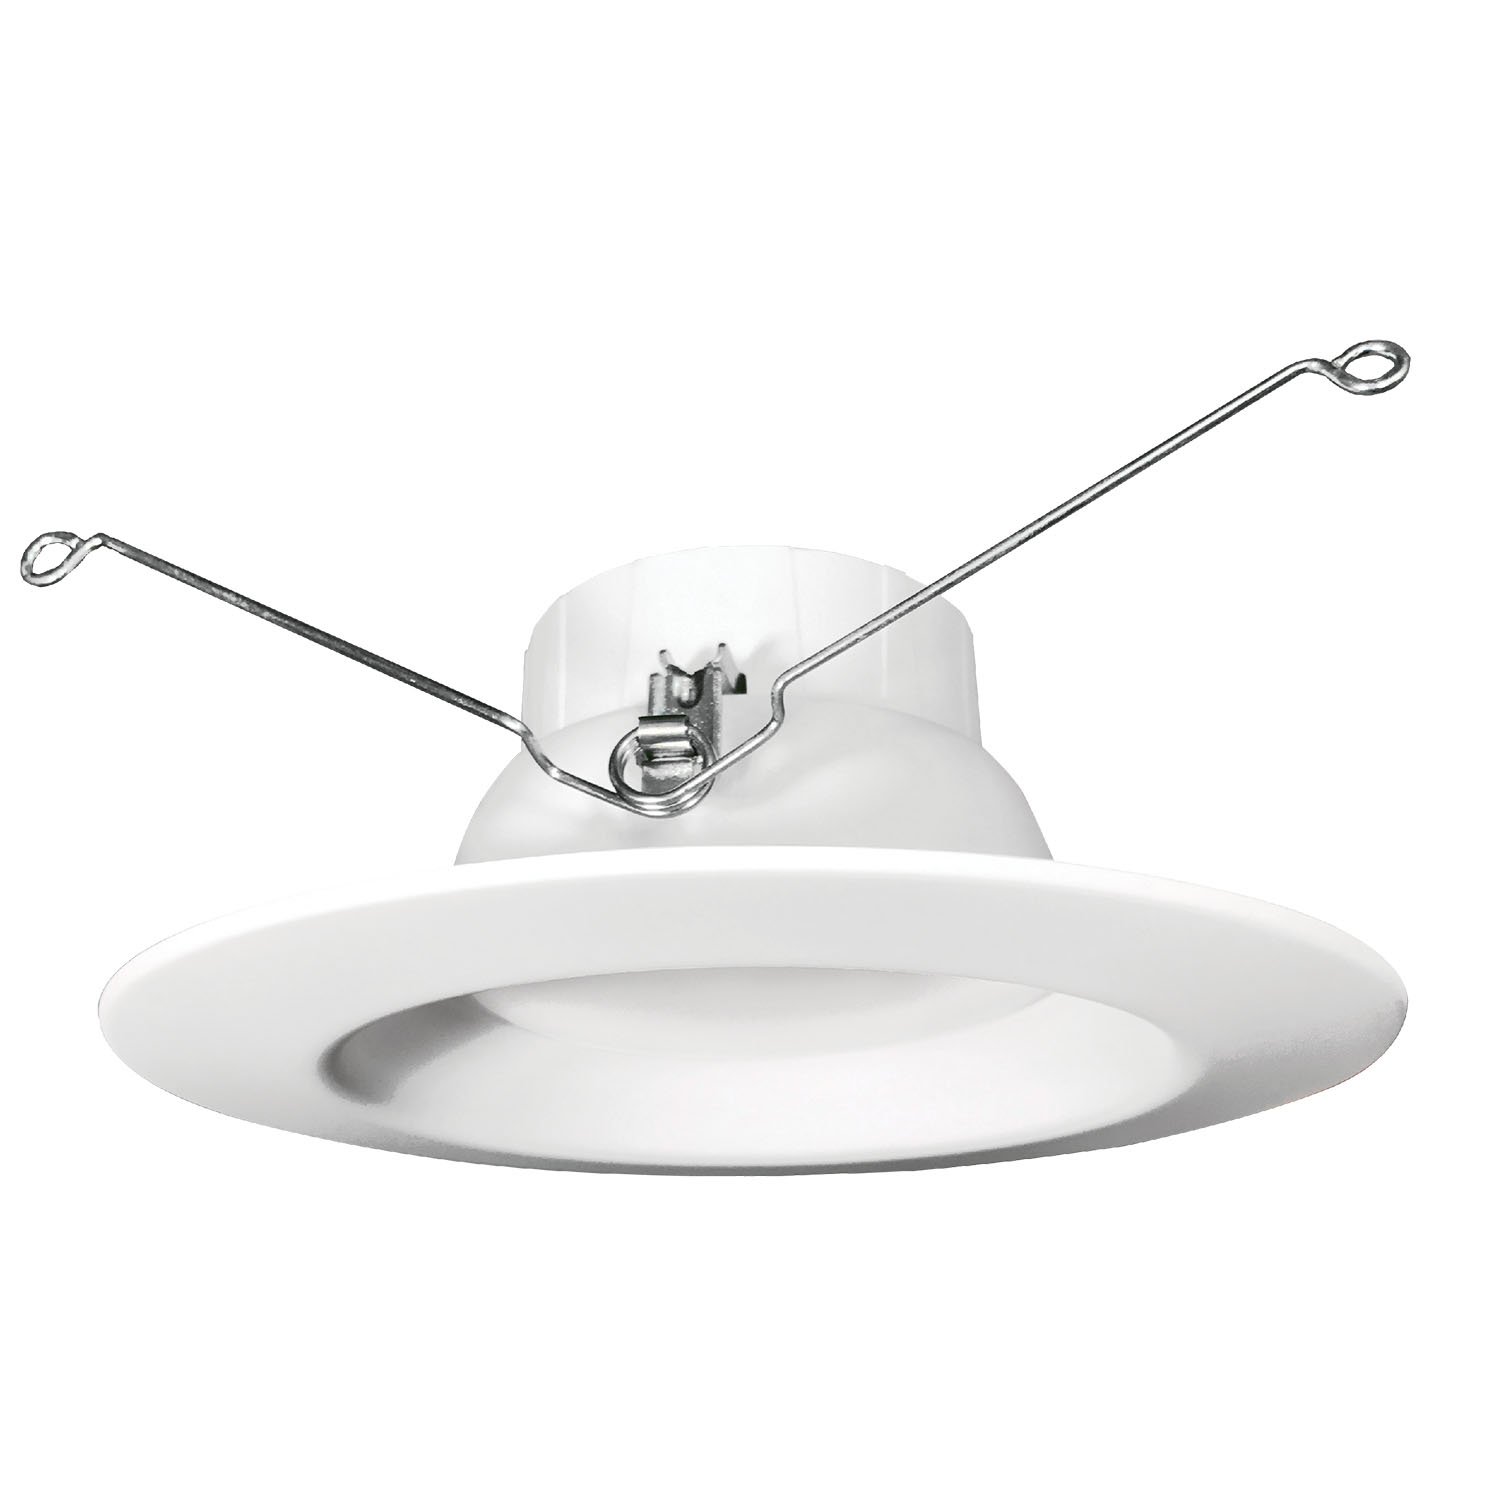 "DL6FR12/940/ECO/LED2 99643 6"" Retrofit Downlight, 12W, 4000K, Dimmable ProLED ECO Series II"